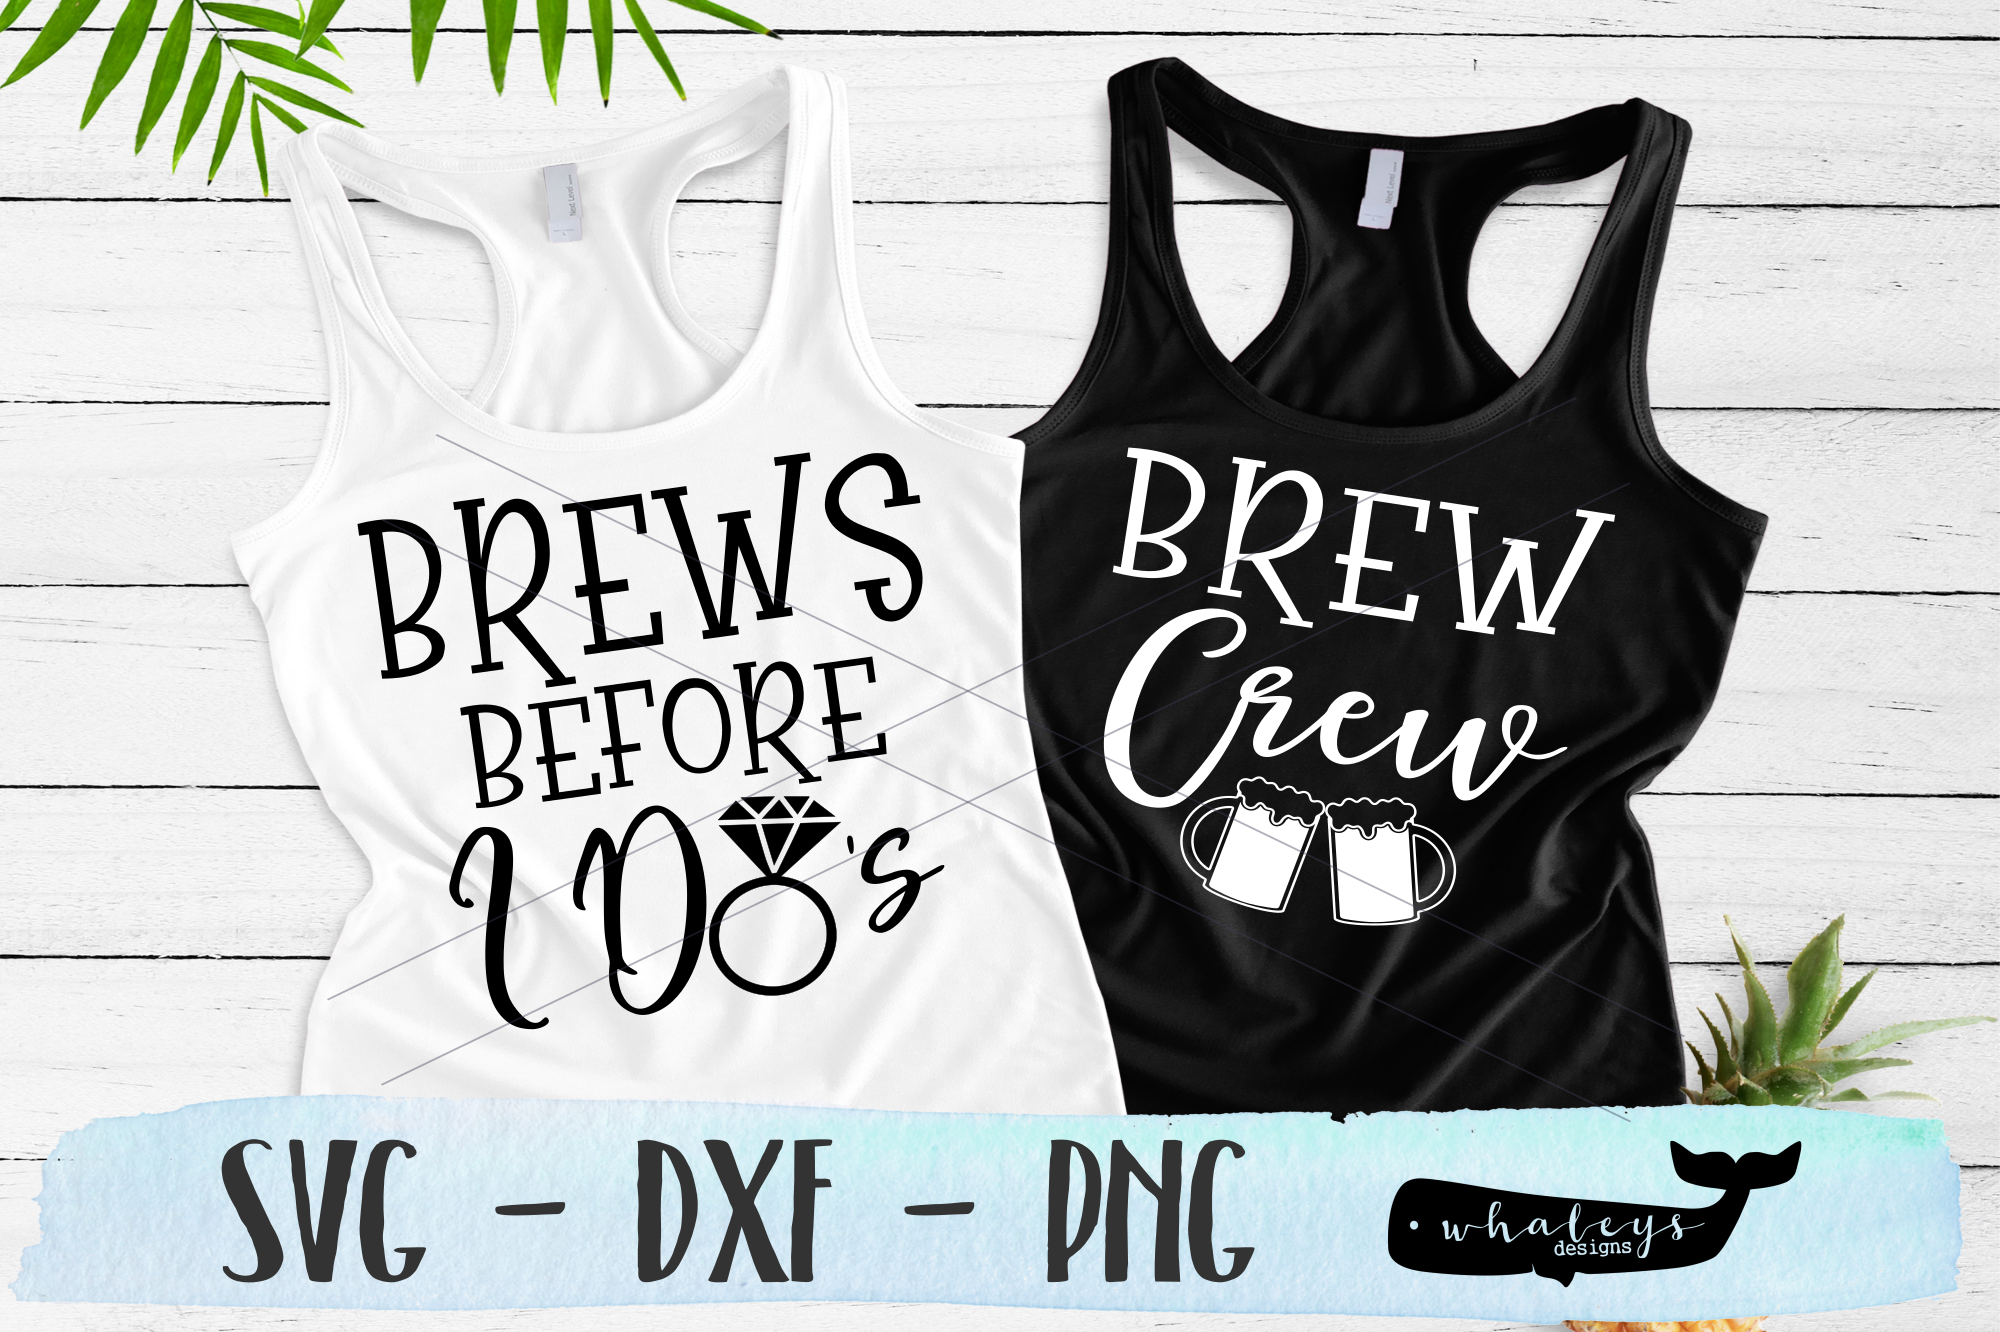 Download Free Brews Before I Do S Brew Crew Graphic By Whaleysdesigns for Cricut Explore, Silhouette and other cutting machines.